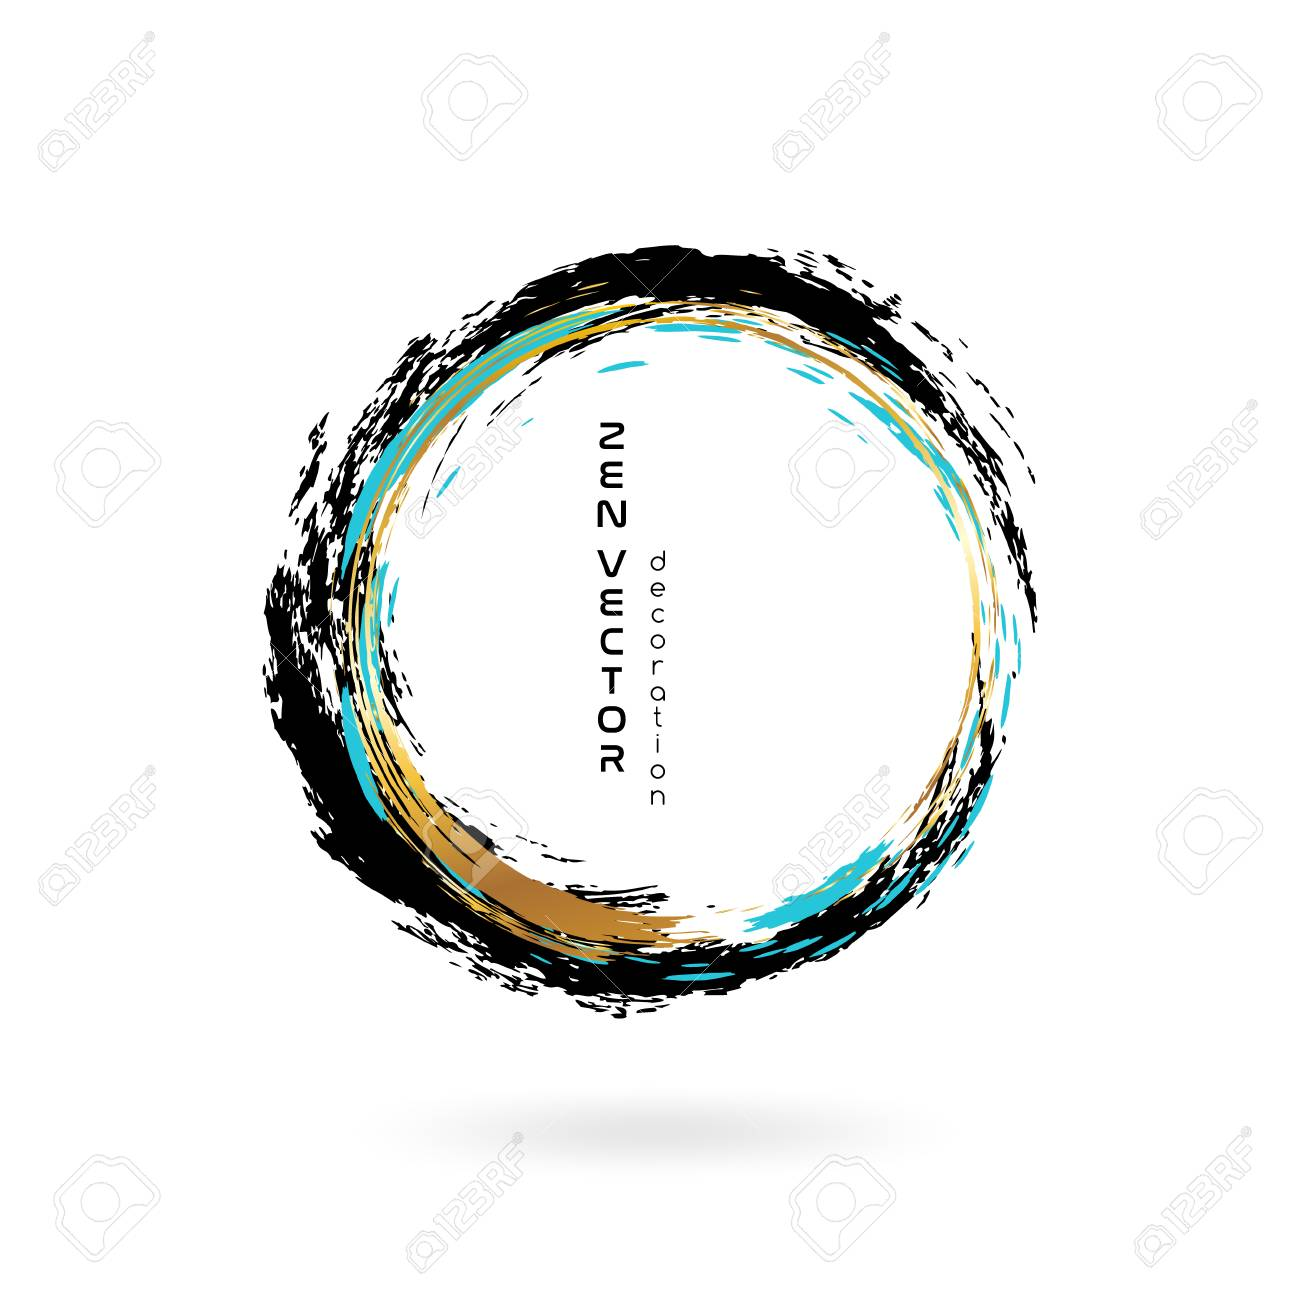 Ink zen circle emblem. Hand drawn abstract decoration element. Black, blue and gold colors. - 97111856